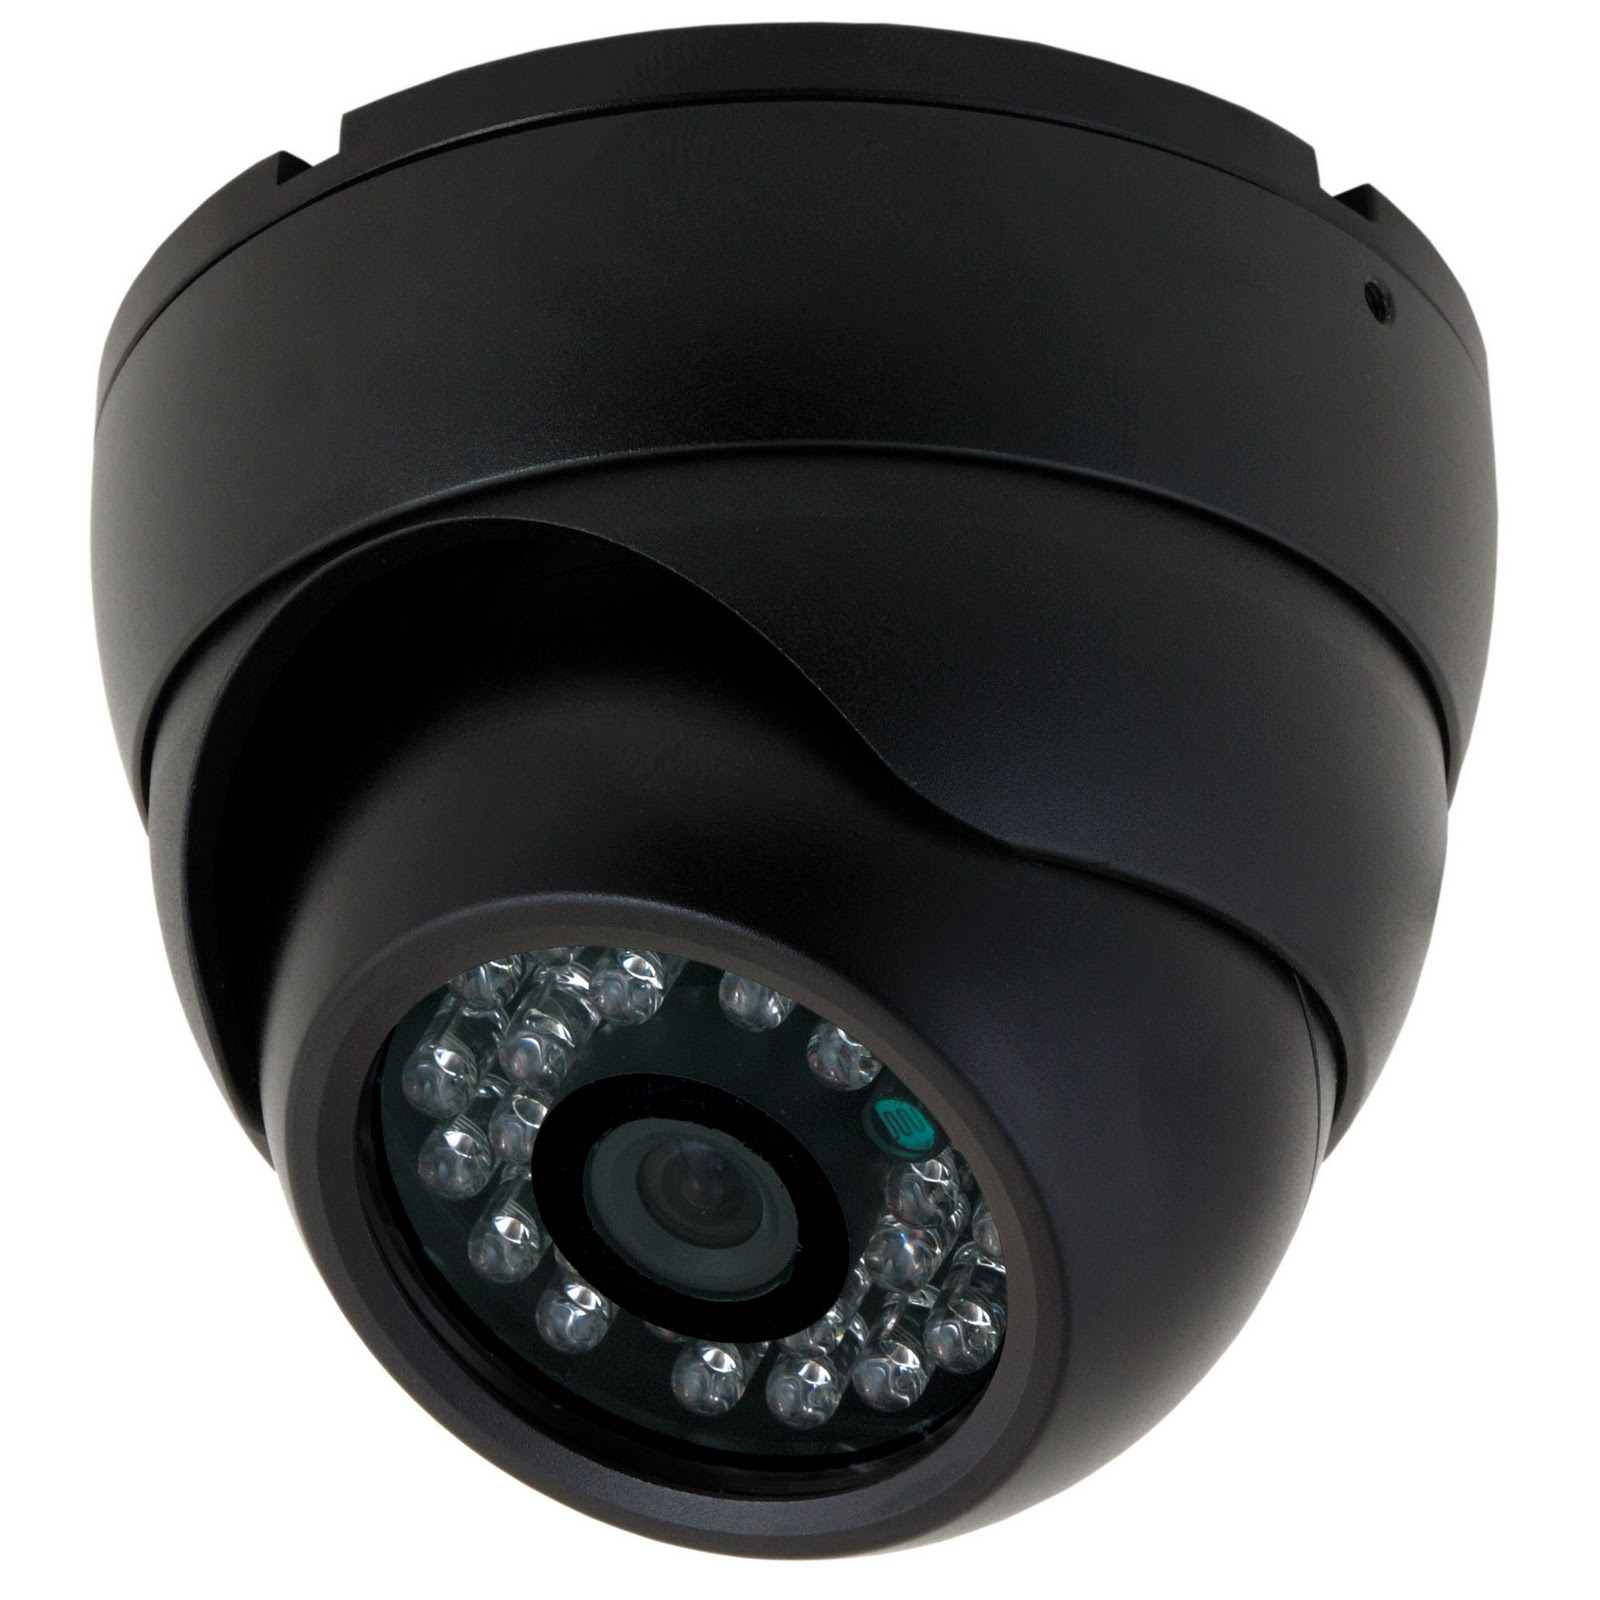 Gbs Security Systems Gbs Ir Dome Camera